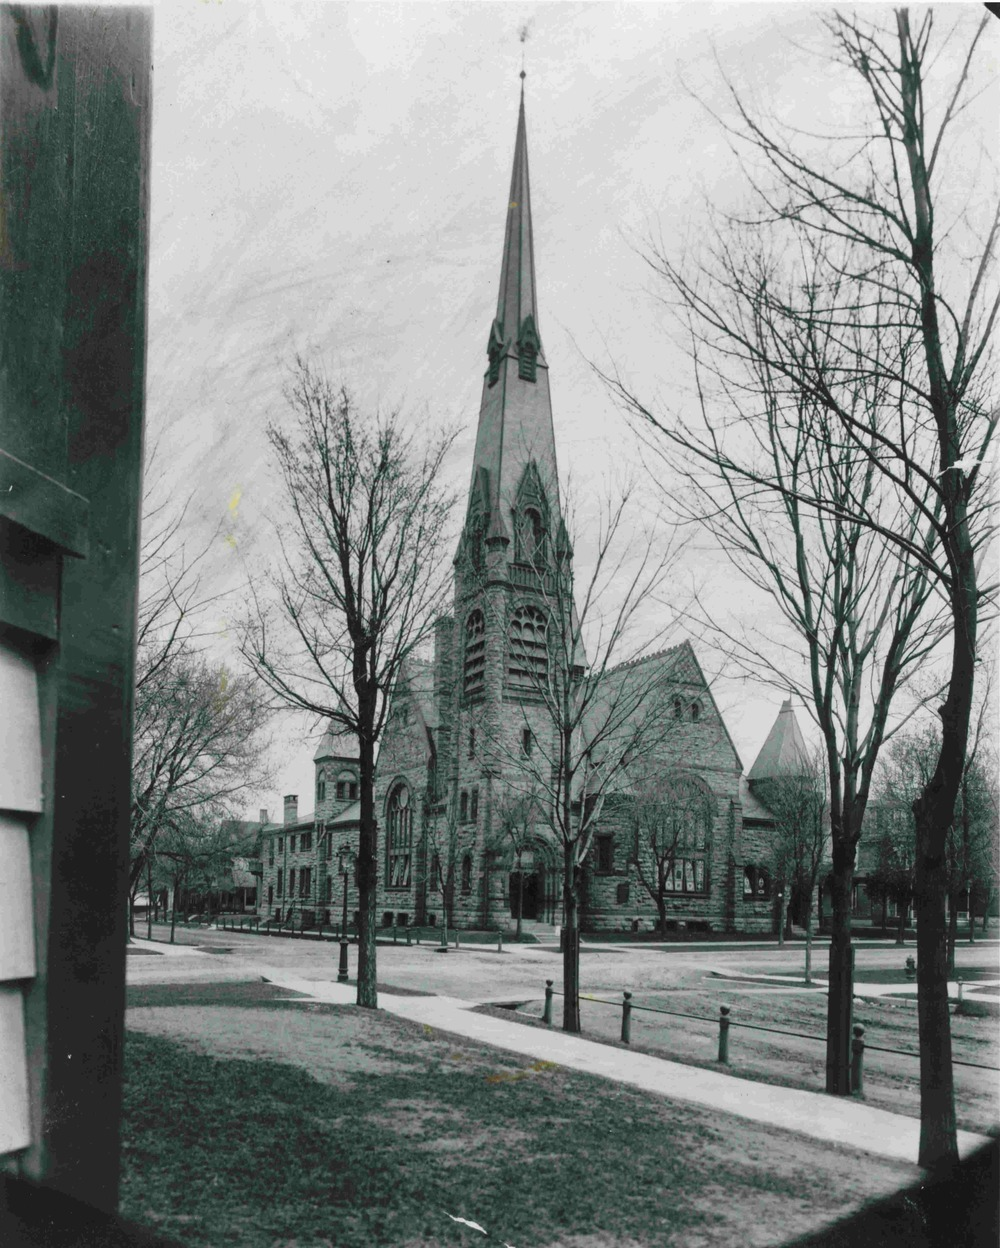 The original structure of St. Paul's Church with steeple